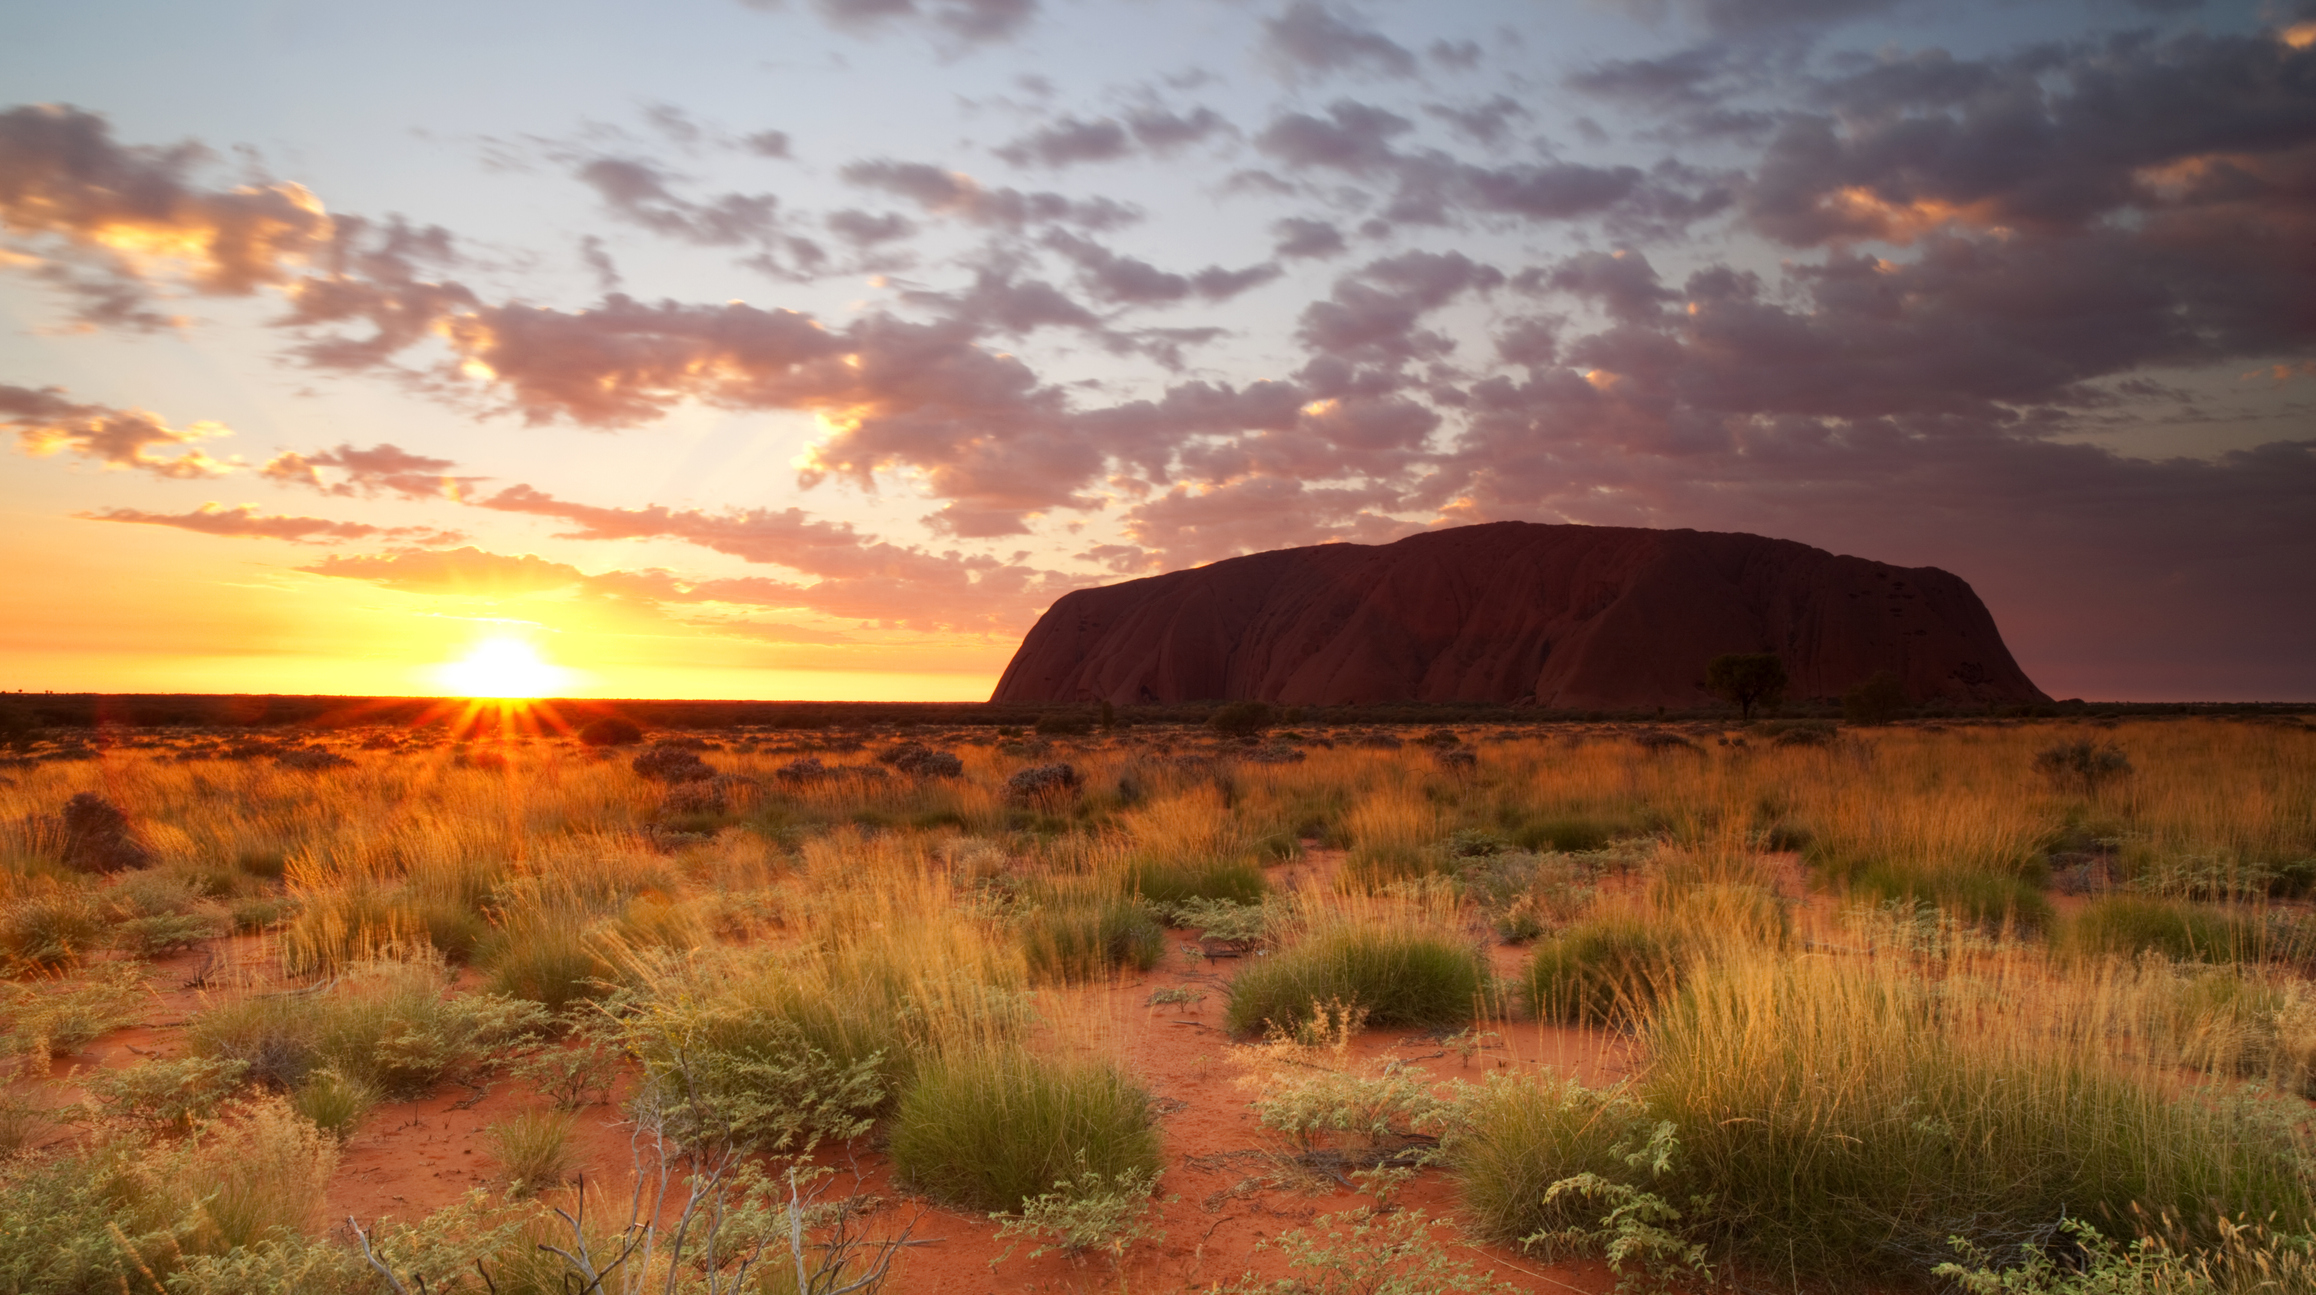 Uluru, or Ayers Rock: Fascinating facts about Australia's iconic monument